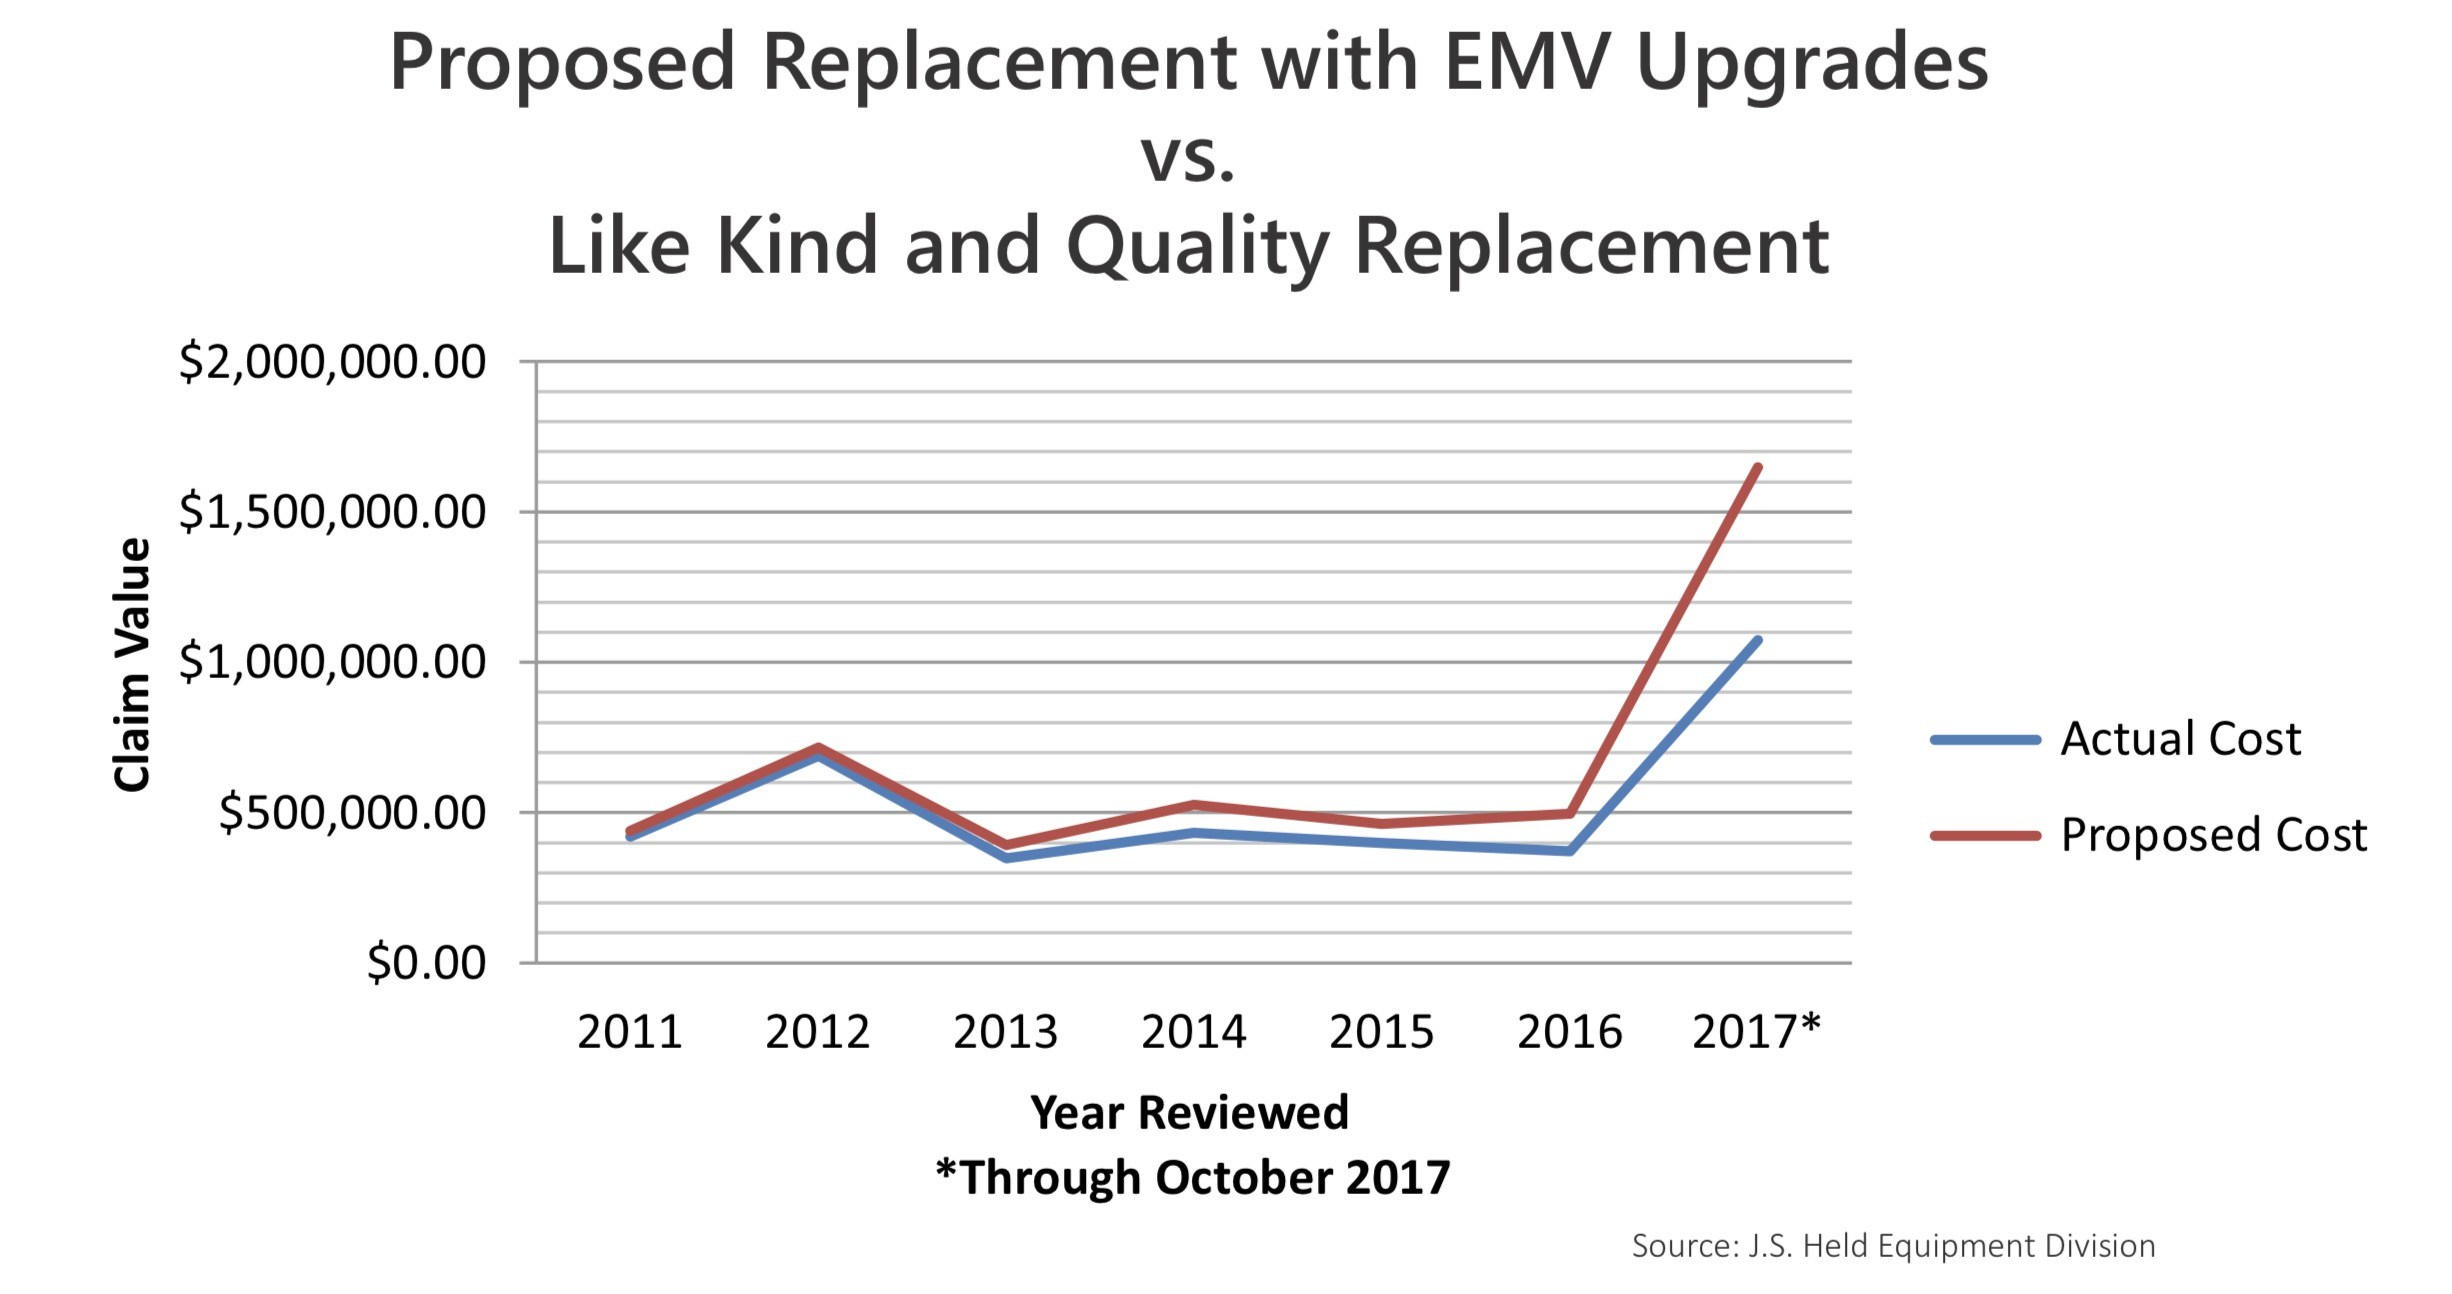 FIGURE 7 - PROPOSED REPLACEMENT WITH EMV UPGRADES VS LIKE KIND AND QUALITY REPLACEMENT